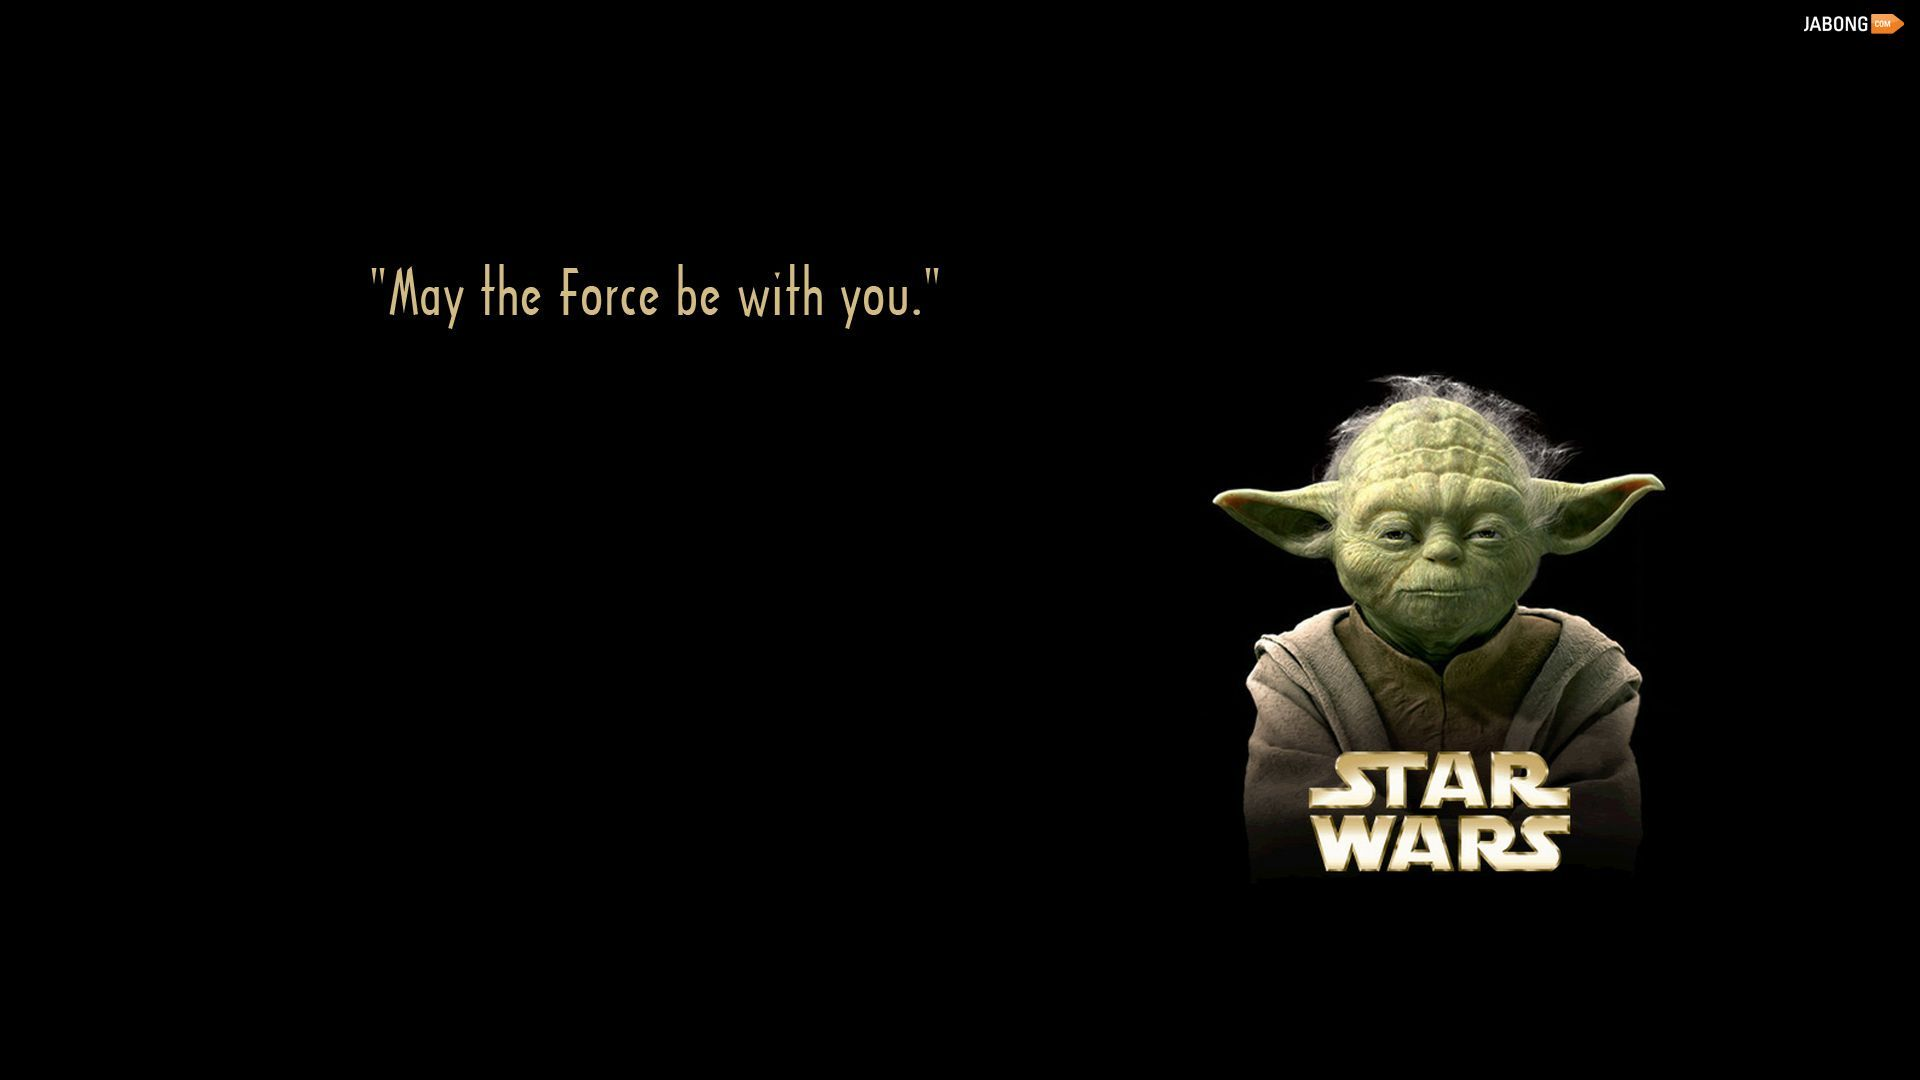 Yoda Quotes Wallpapers Top Free Yoda Quotes Backgrounds